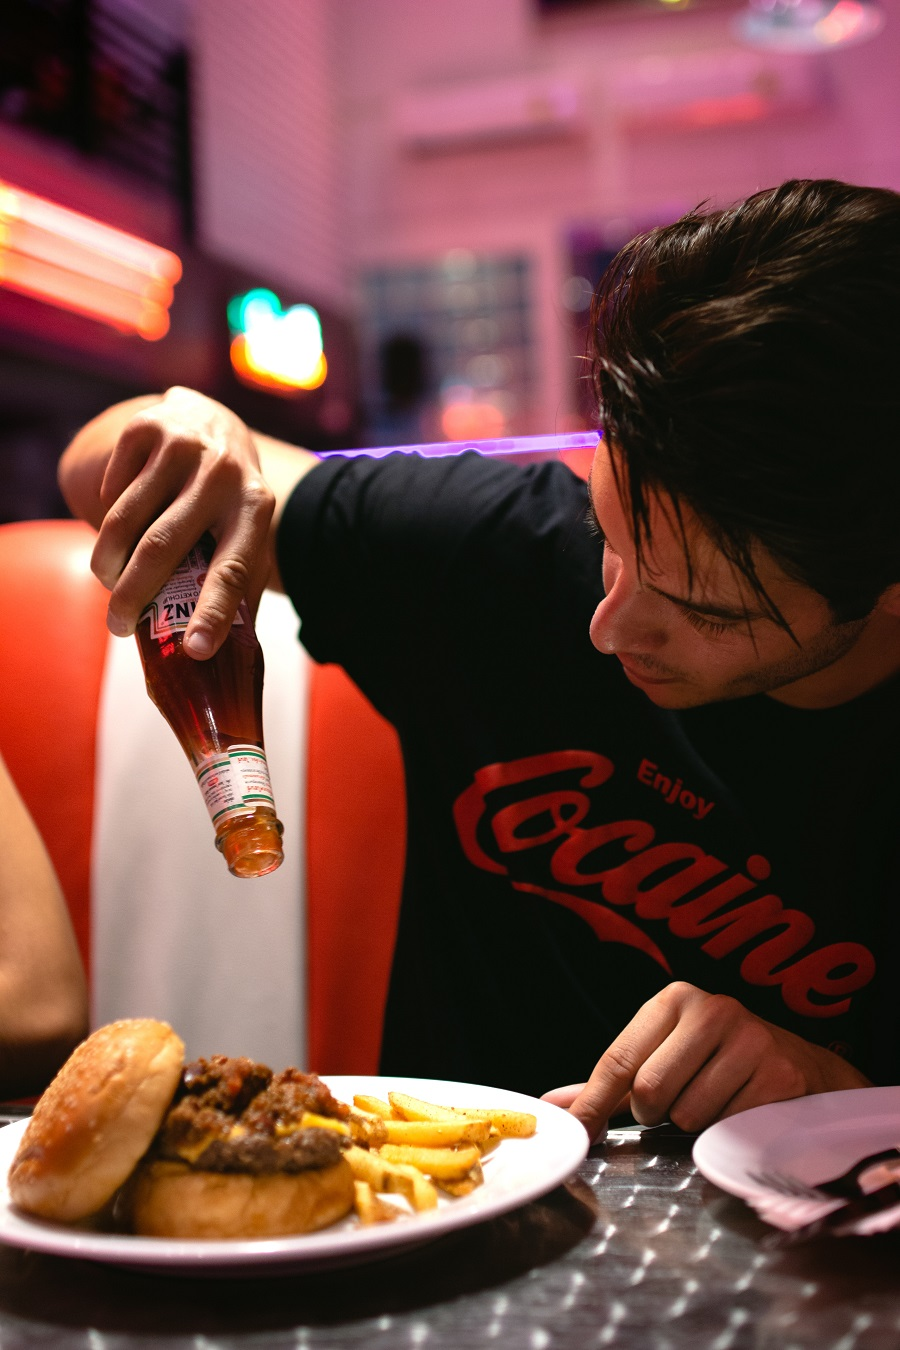 Man pouring sauce on burger and fries